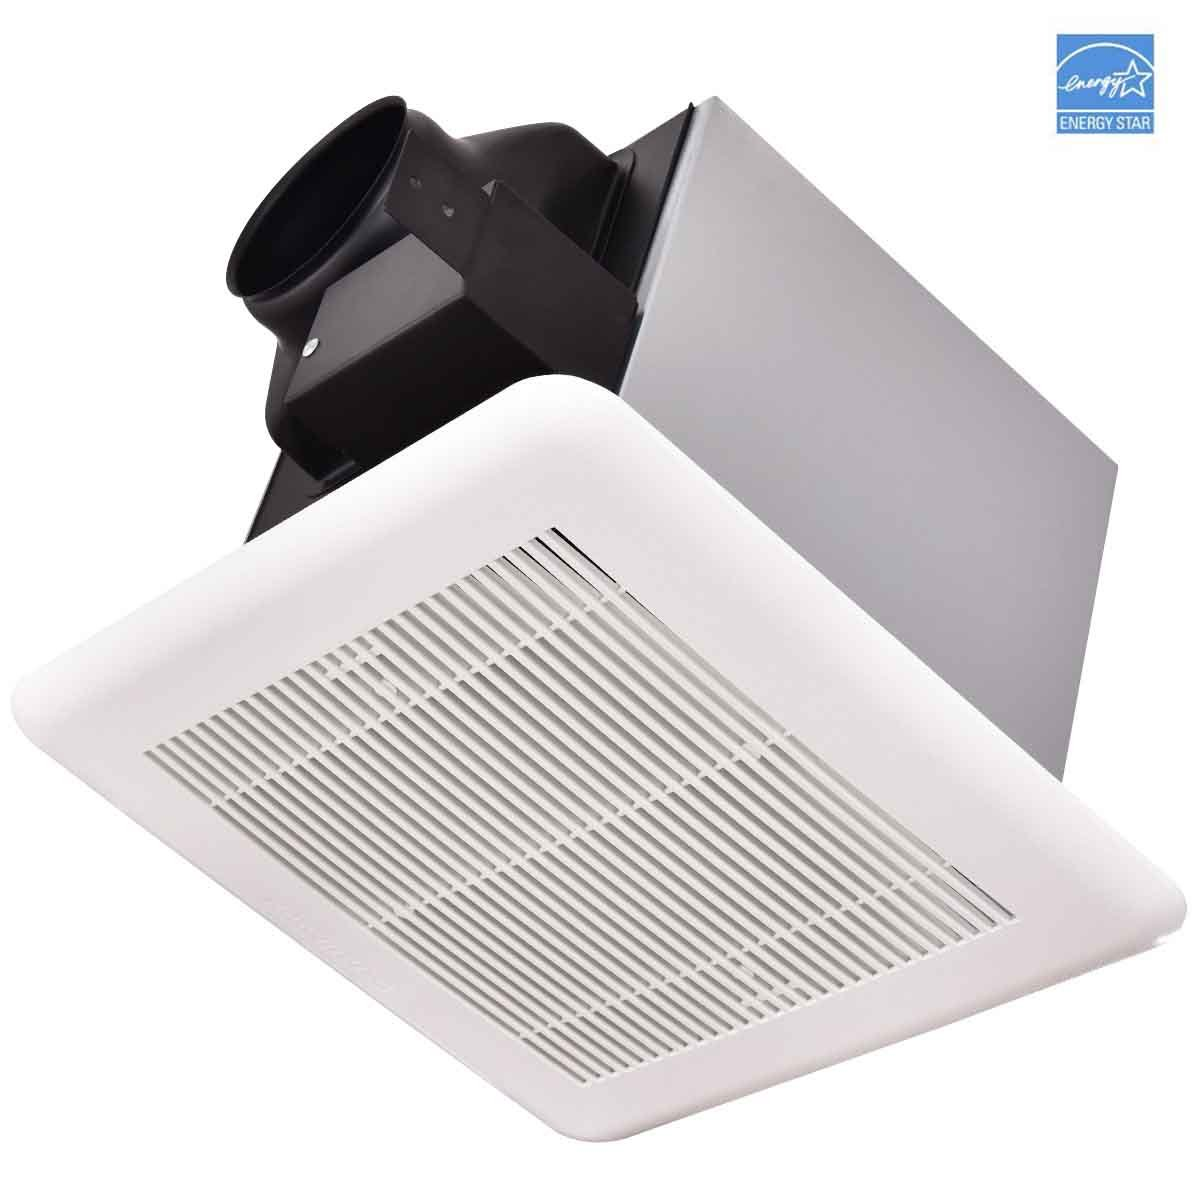 80 CFM Exhaust Fan, GentleShower Ceiling Mounted Ventilation Fan for Bathroom, 0.7 Sones, Classic White